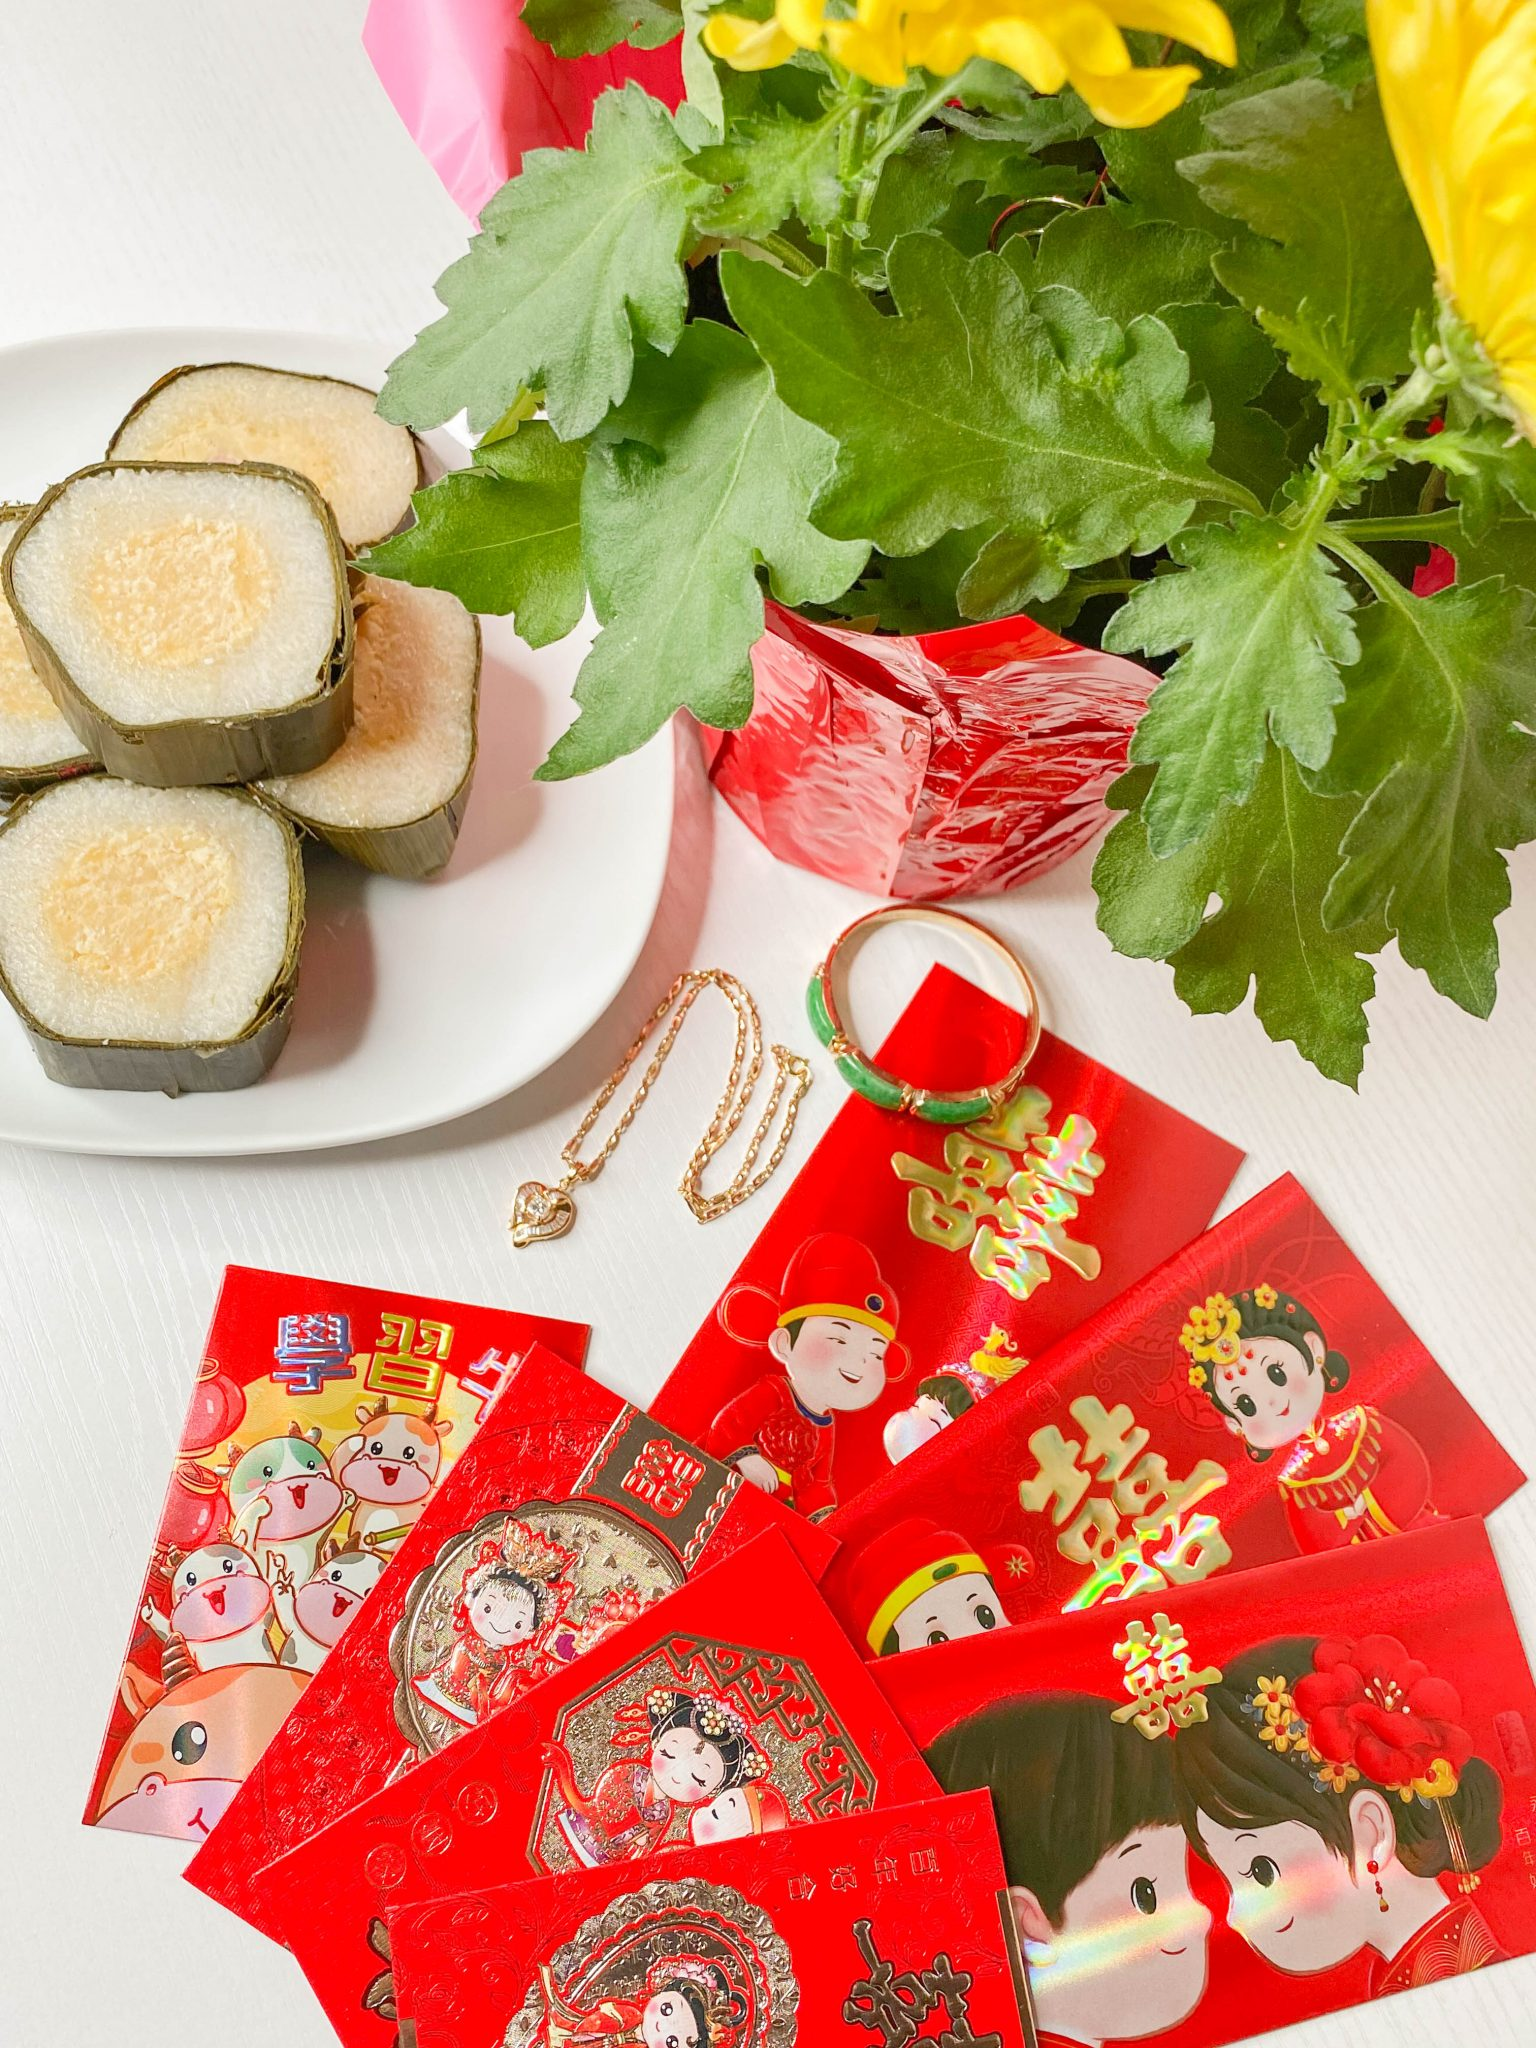 Happy Lunar New Year - Year of the Ox by Basically A Mess (photo of Lunar New Year red envelopes and Vietnamese Banh Tet)